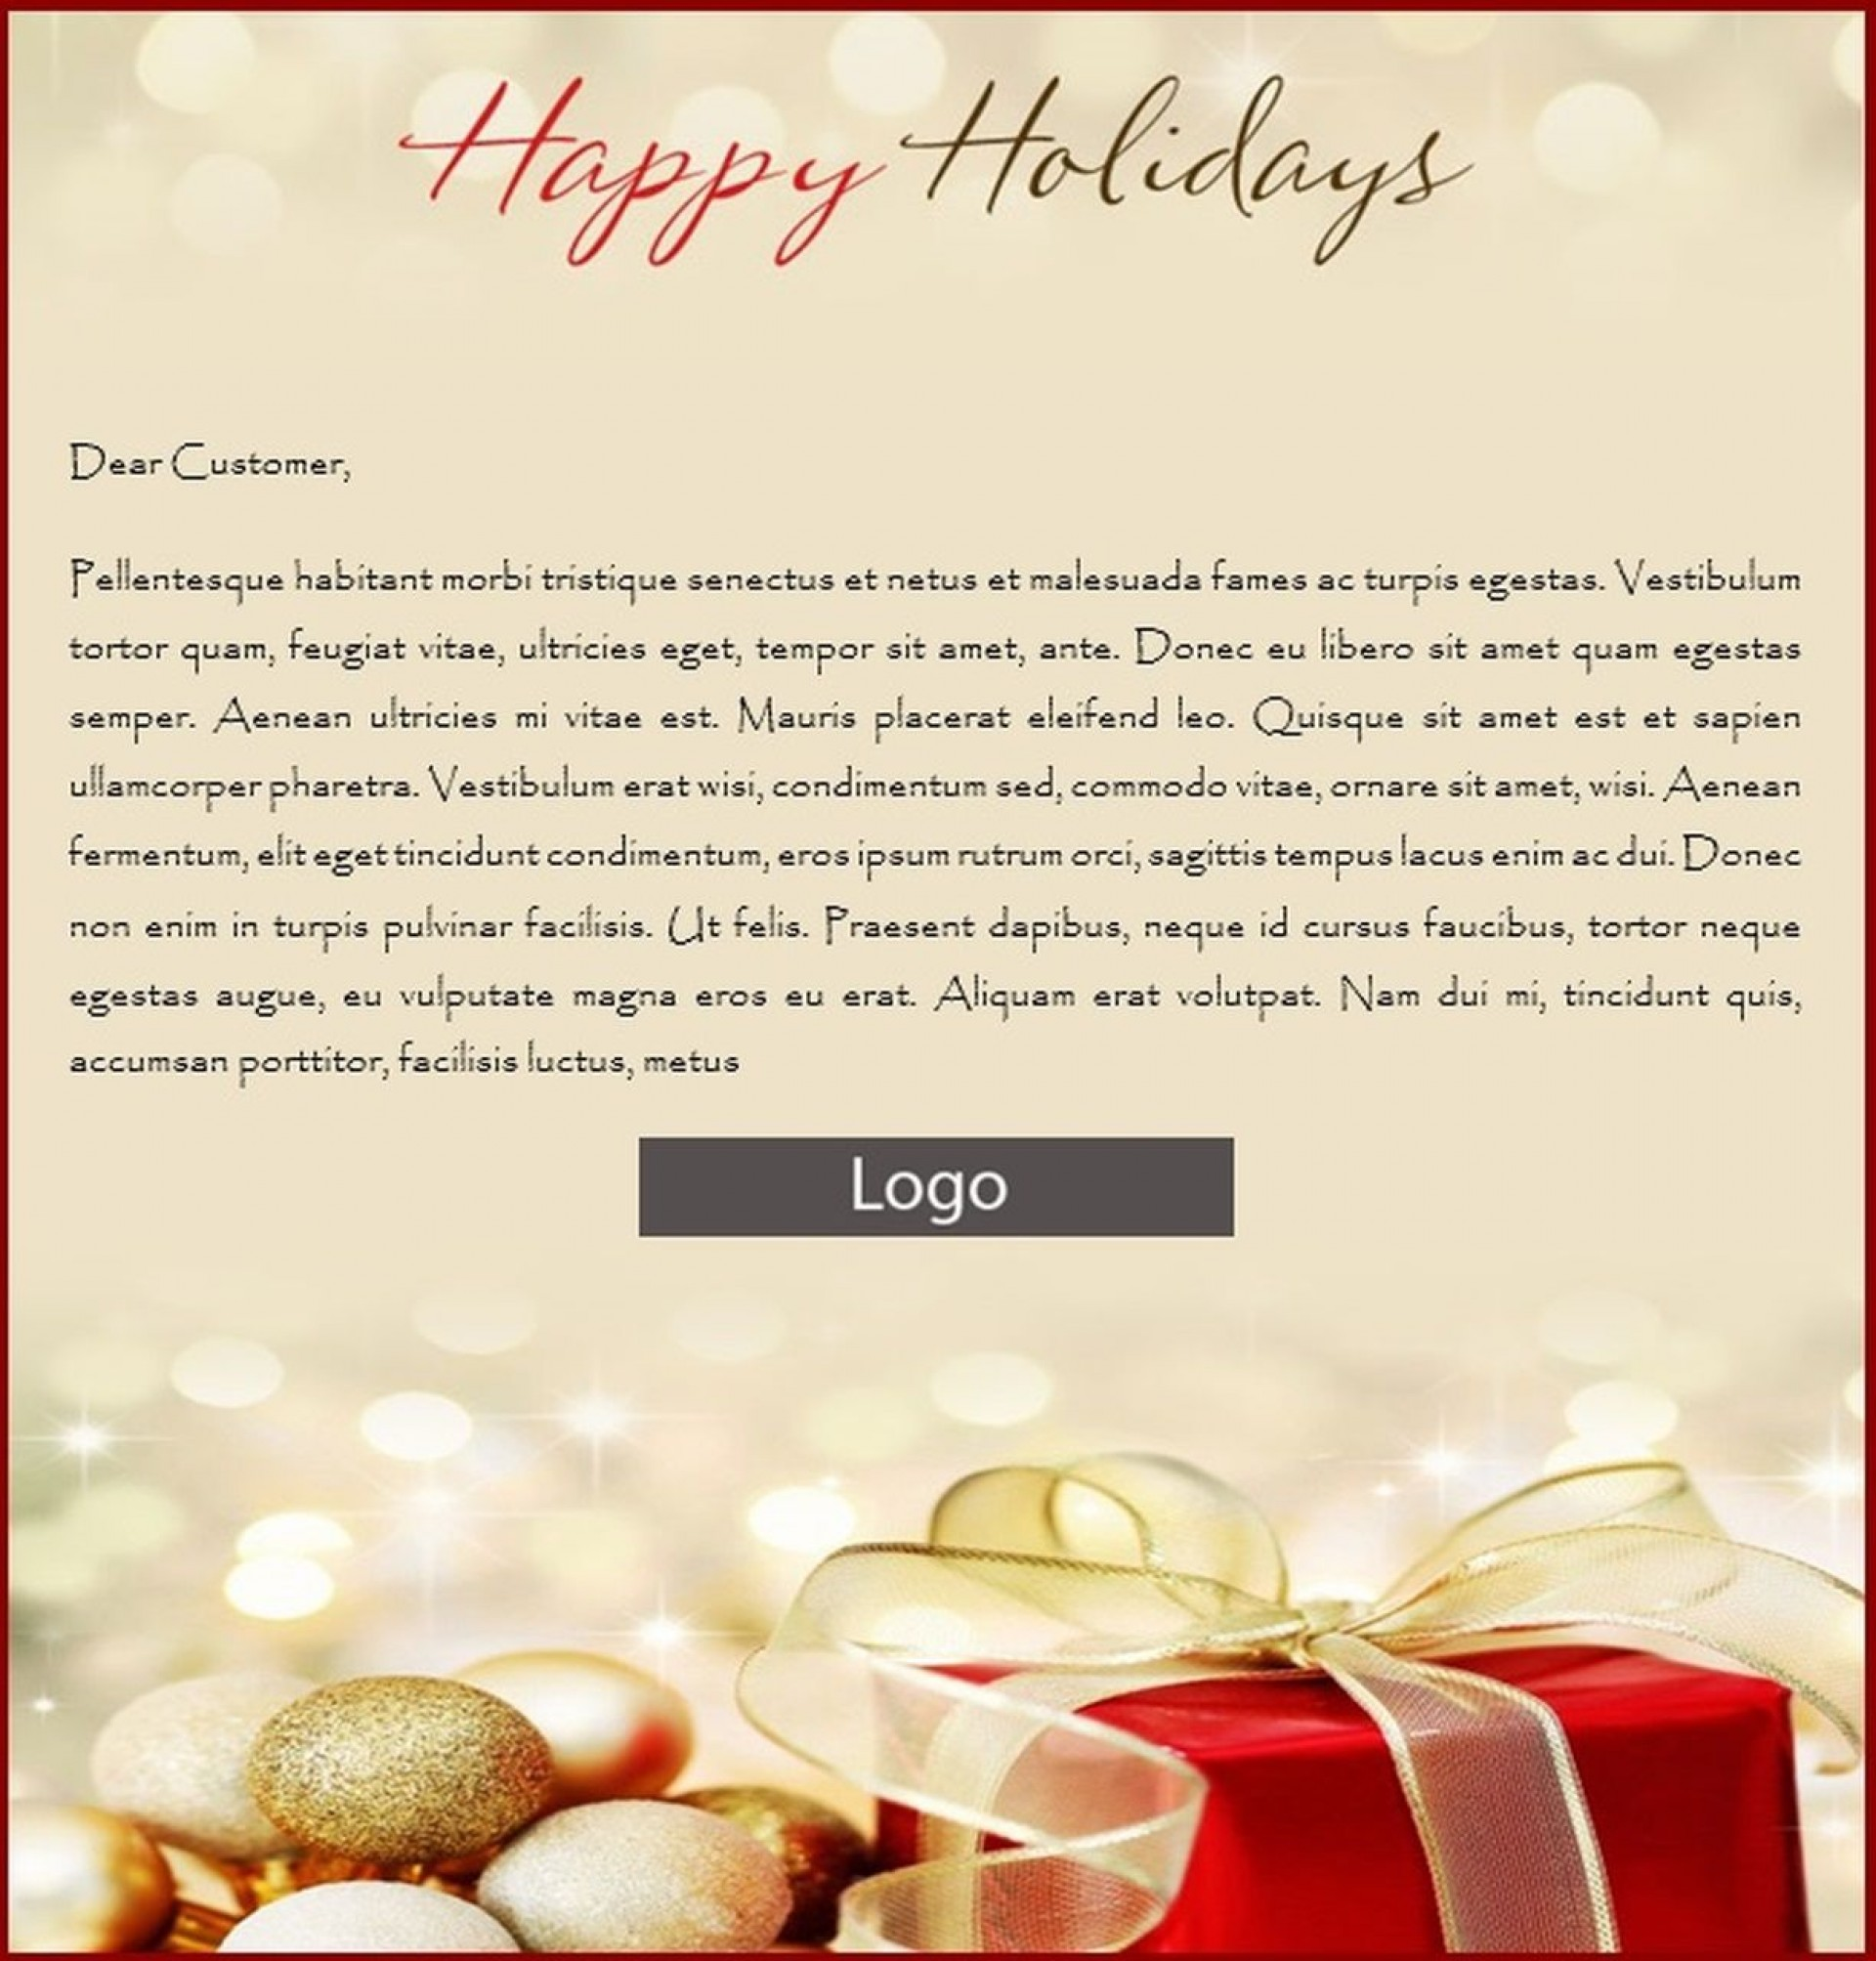 000 Simple Holiday E Mail Template Inspiration  Email Outlook Christma For Message1920